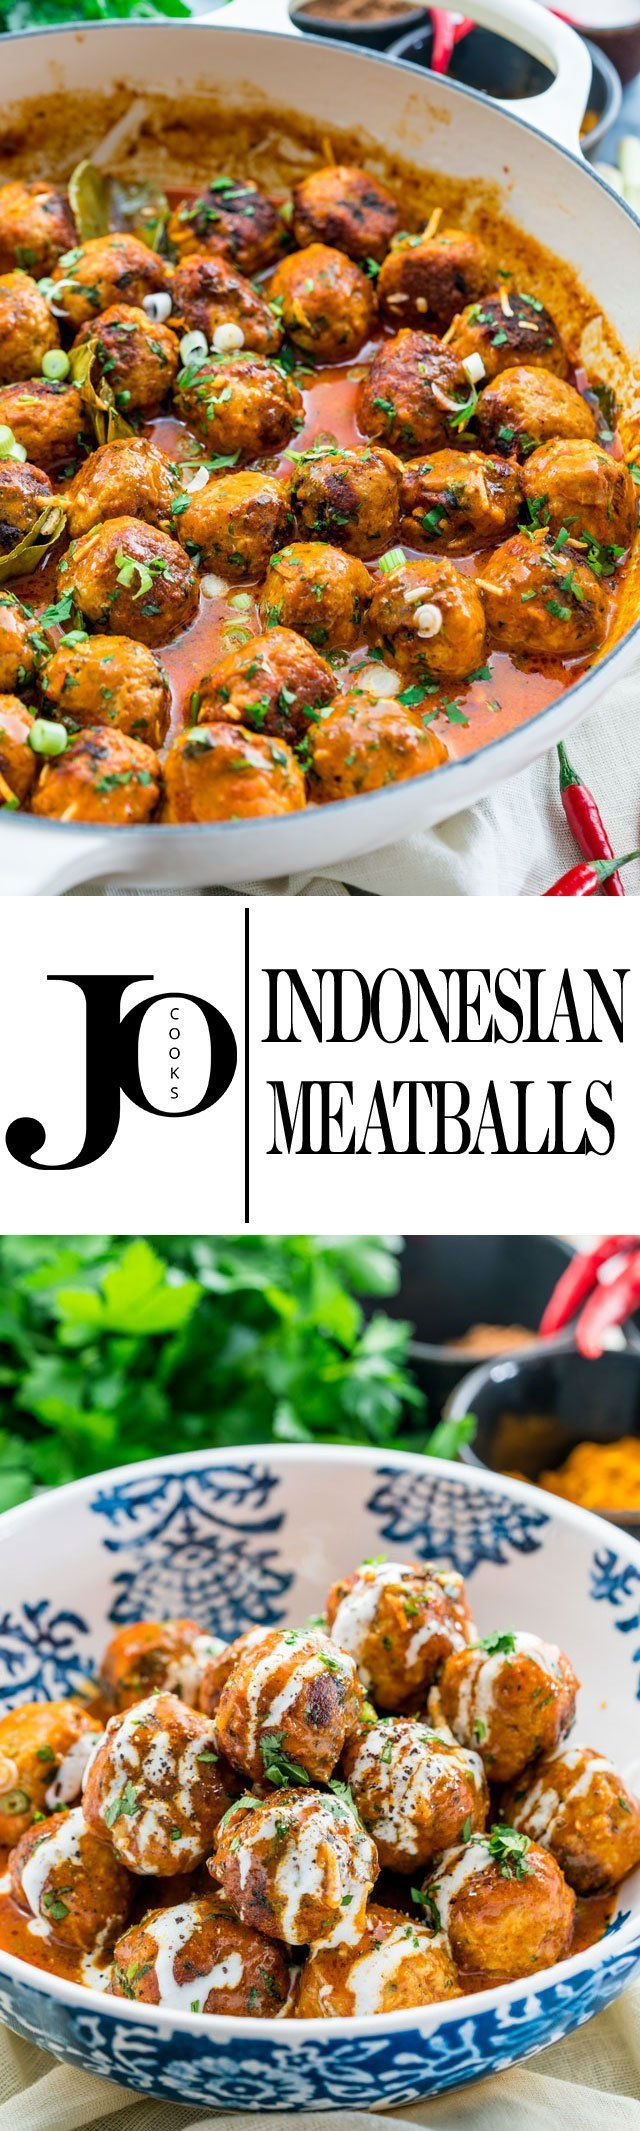 290 Best Asian Dinner Images On Pinterest Cooking Food Bay Area Meat Csa In Transition Chicken Recipes These Spicy Indonesian Meatballs Come Complete A Creamy Coconut Curry Sauce That Really Is Supper Recipesmeat